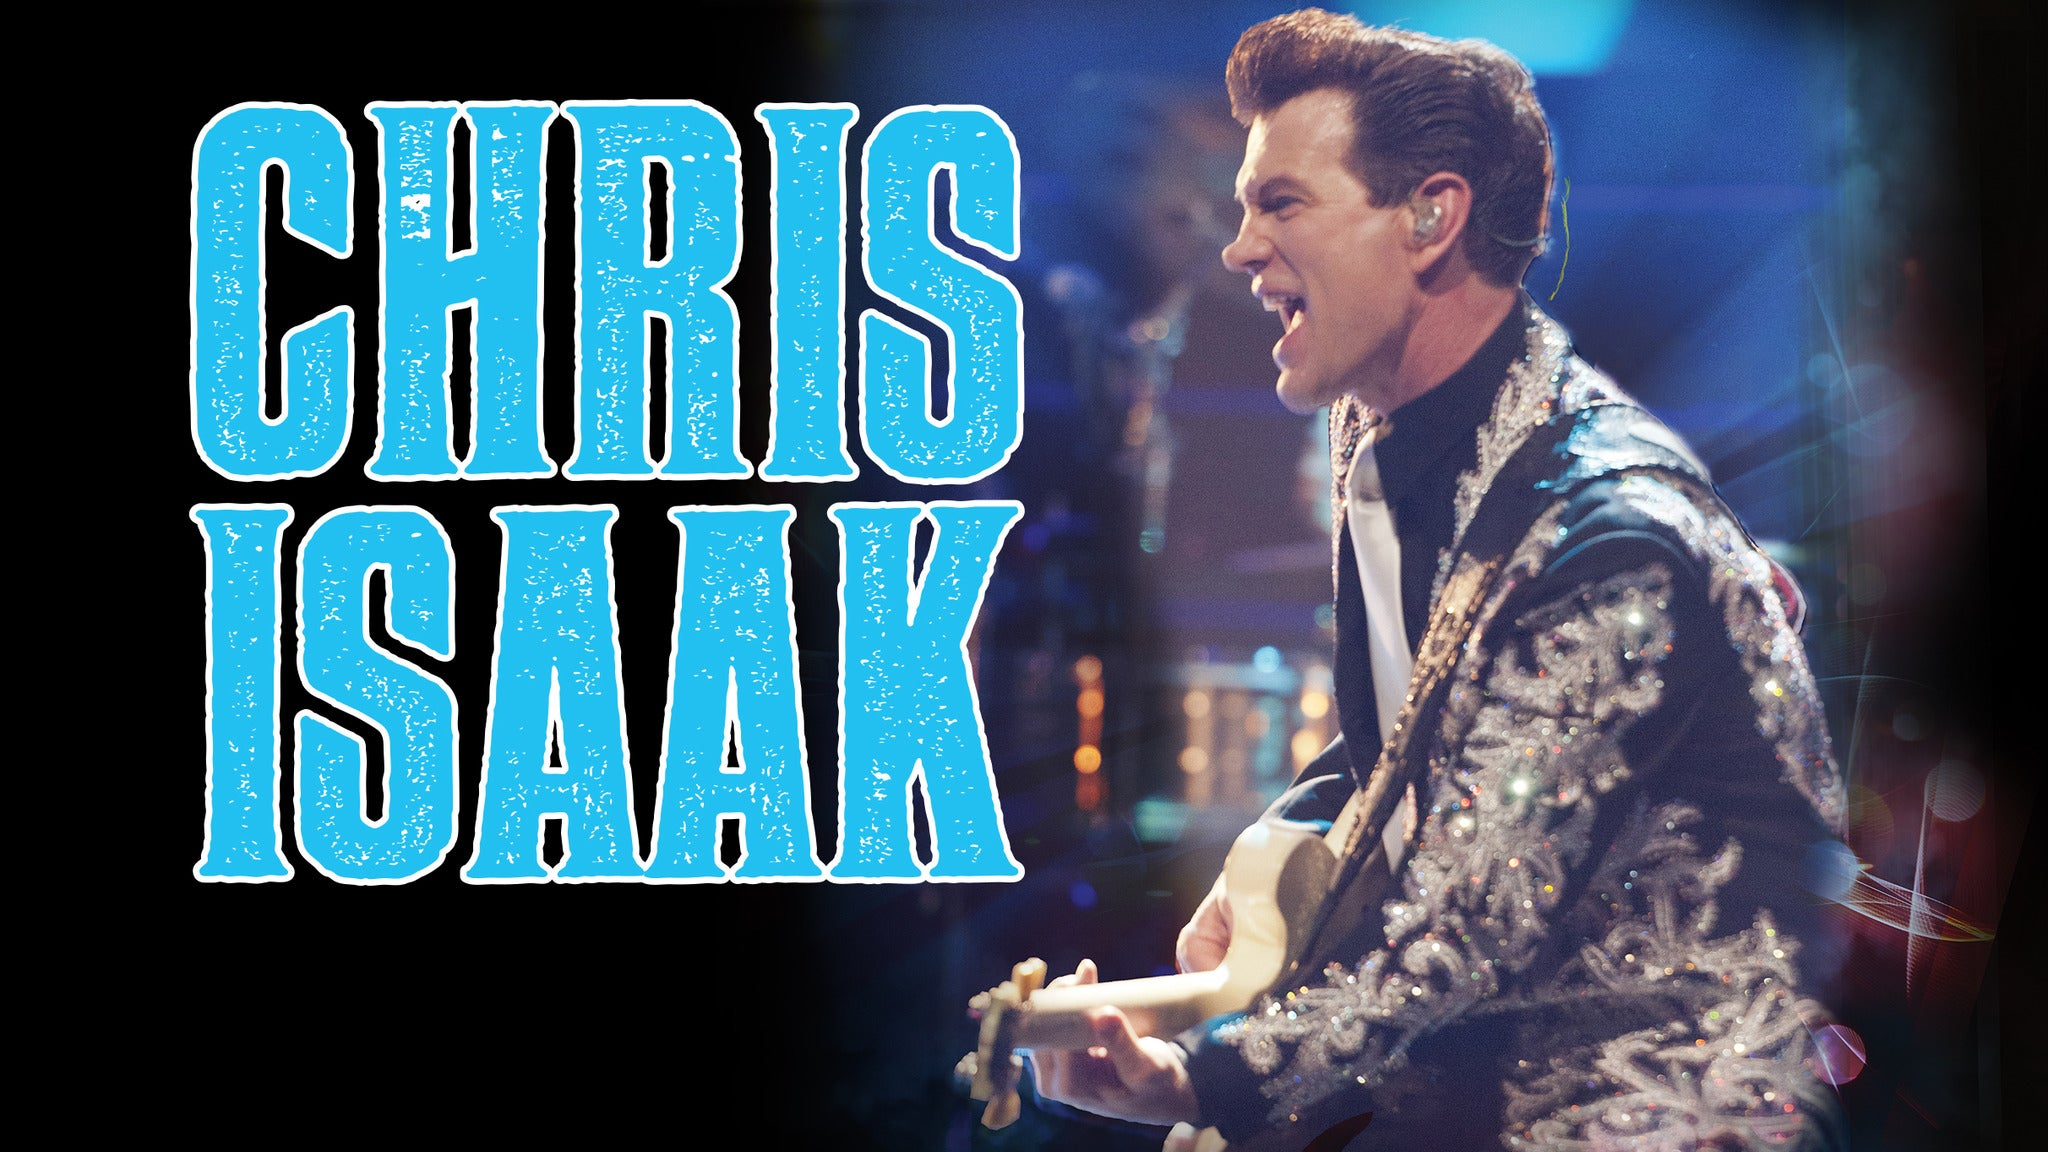 Chris Isaak - Meet & Greet Packages at Mountain Winery